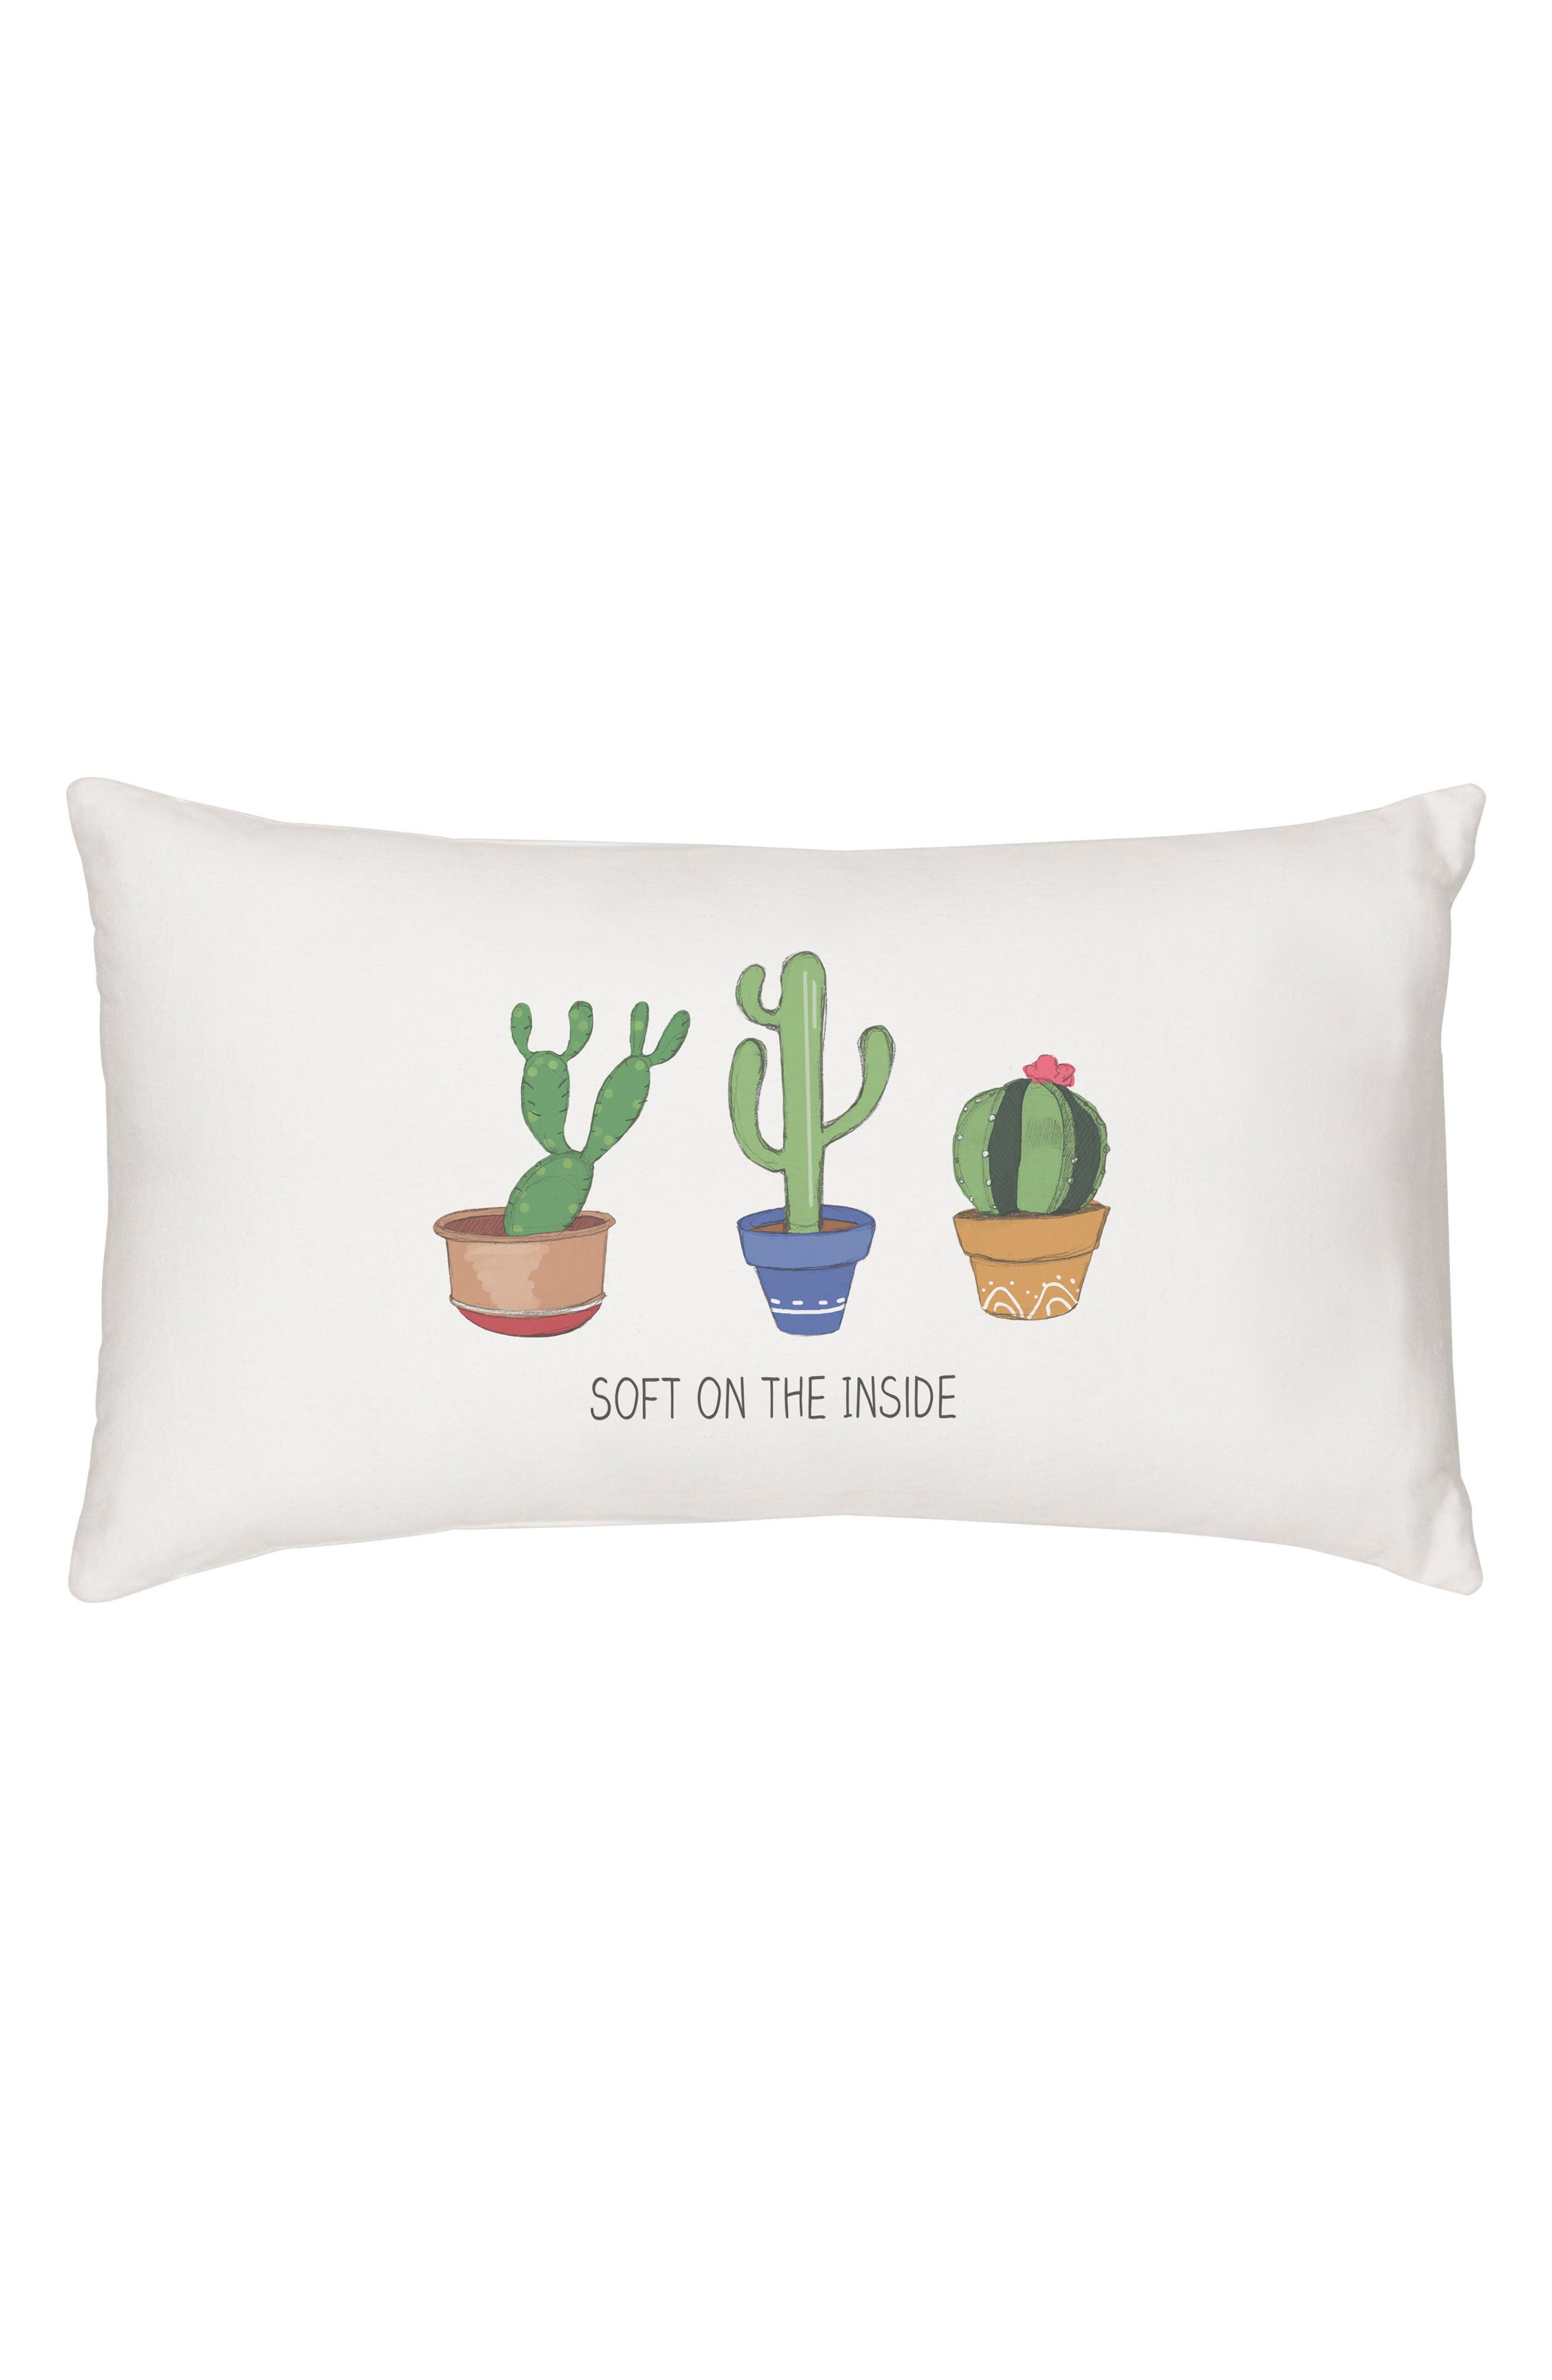 Cactus Accent Pillow,                             Main thumbnail 1, color,                             100